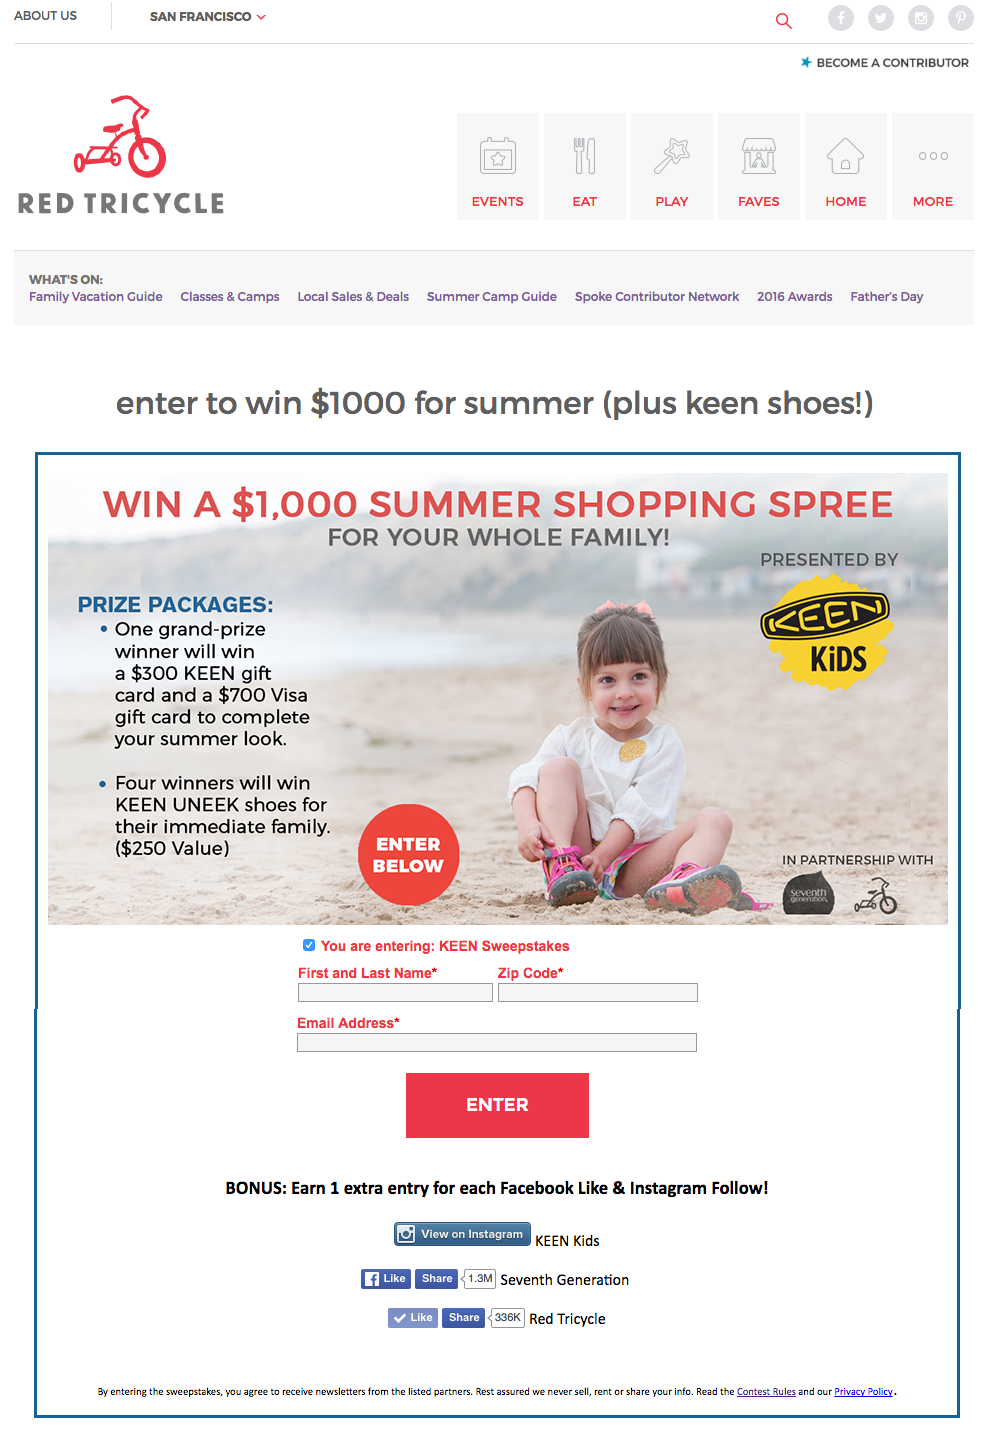 screencapture-redtri-com-keen-sweepstakes-1466023495325